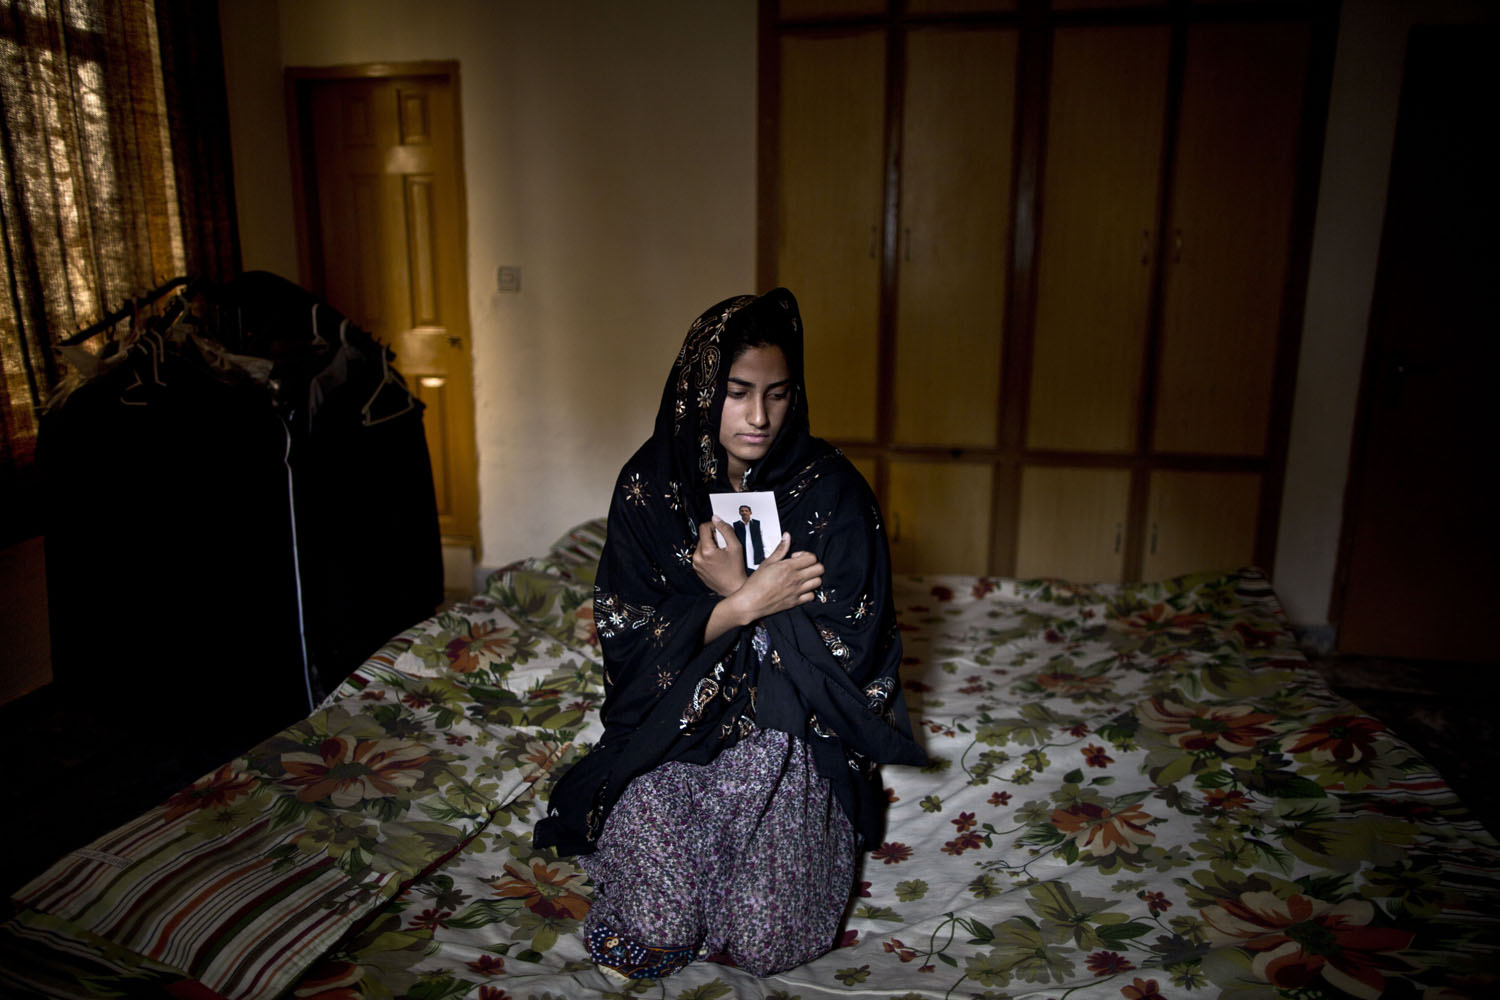 Mar. 16, 2014. Pakistani Syeda Aima Tanveer, 20, daughter of lawyer Tanveer Haider, 58, who was one of eleven victims that was killed by suicide bombers in an attack on a court complex on March, 3 2014, sits on her father's bed embracing his photograph, at their home on the outskirts of Islamabad, Pakistan.